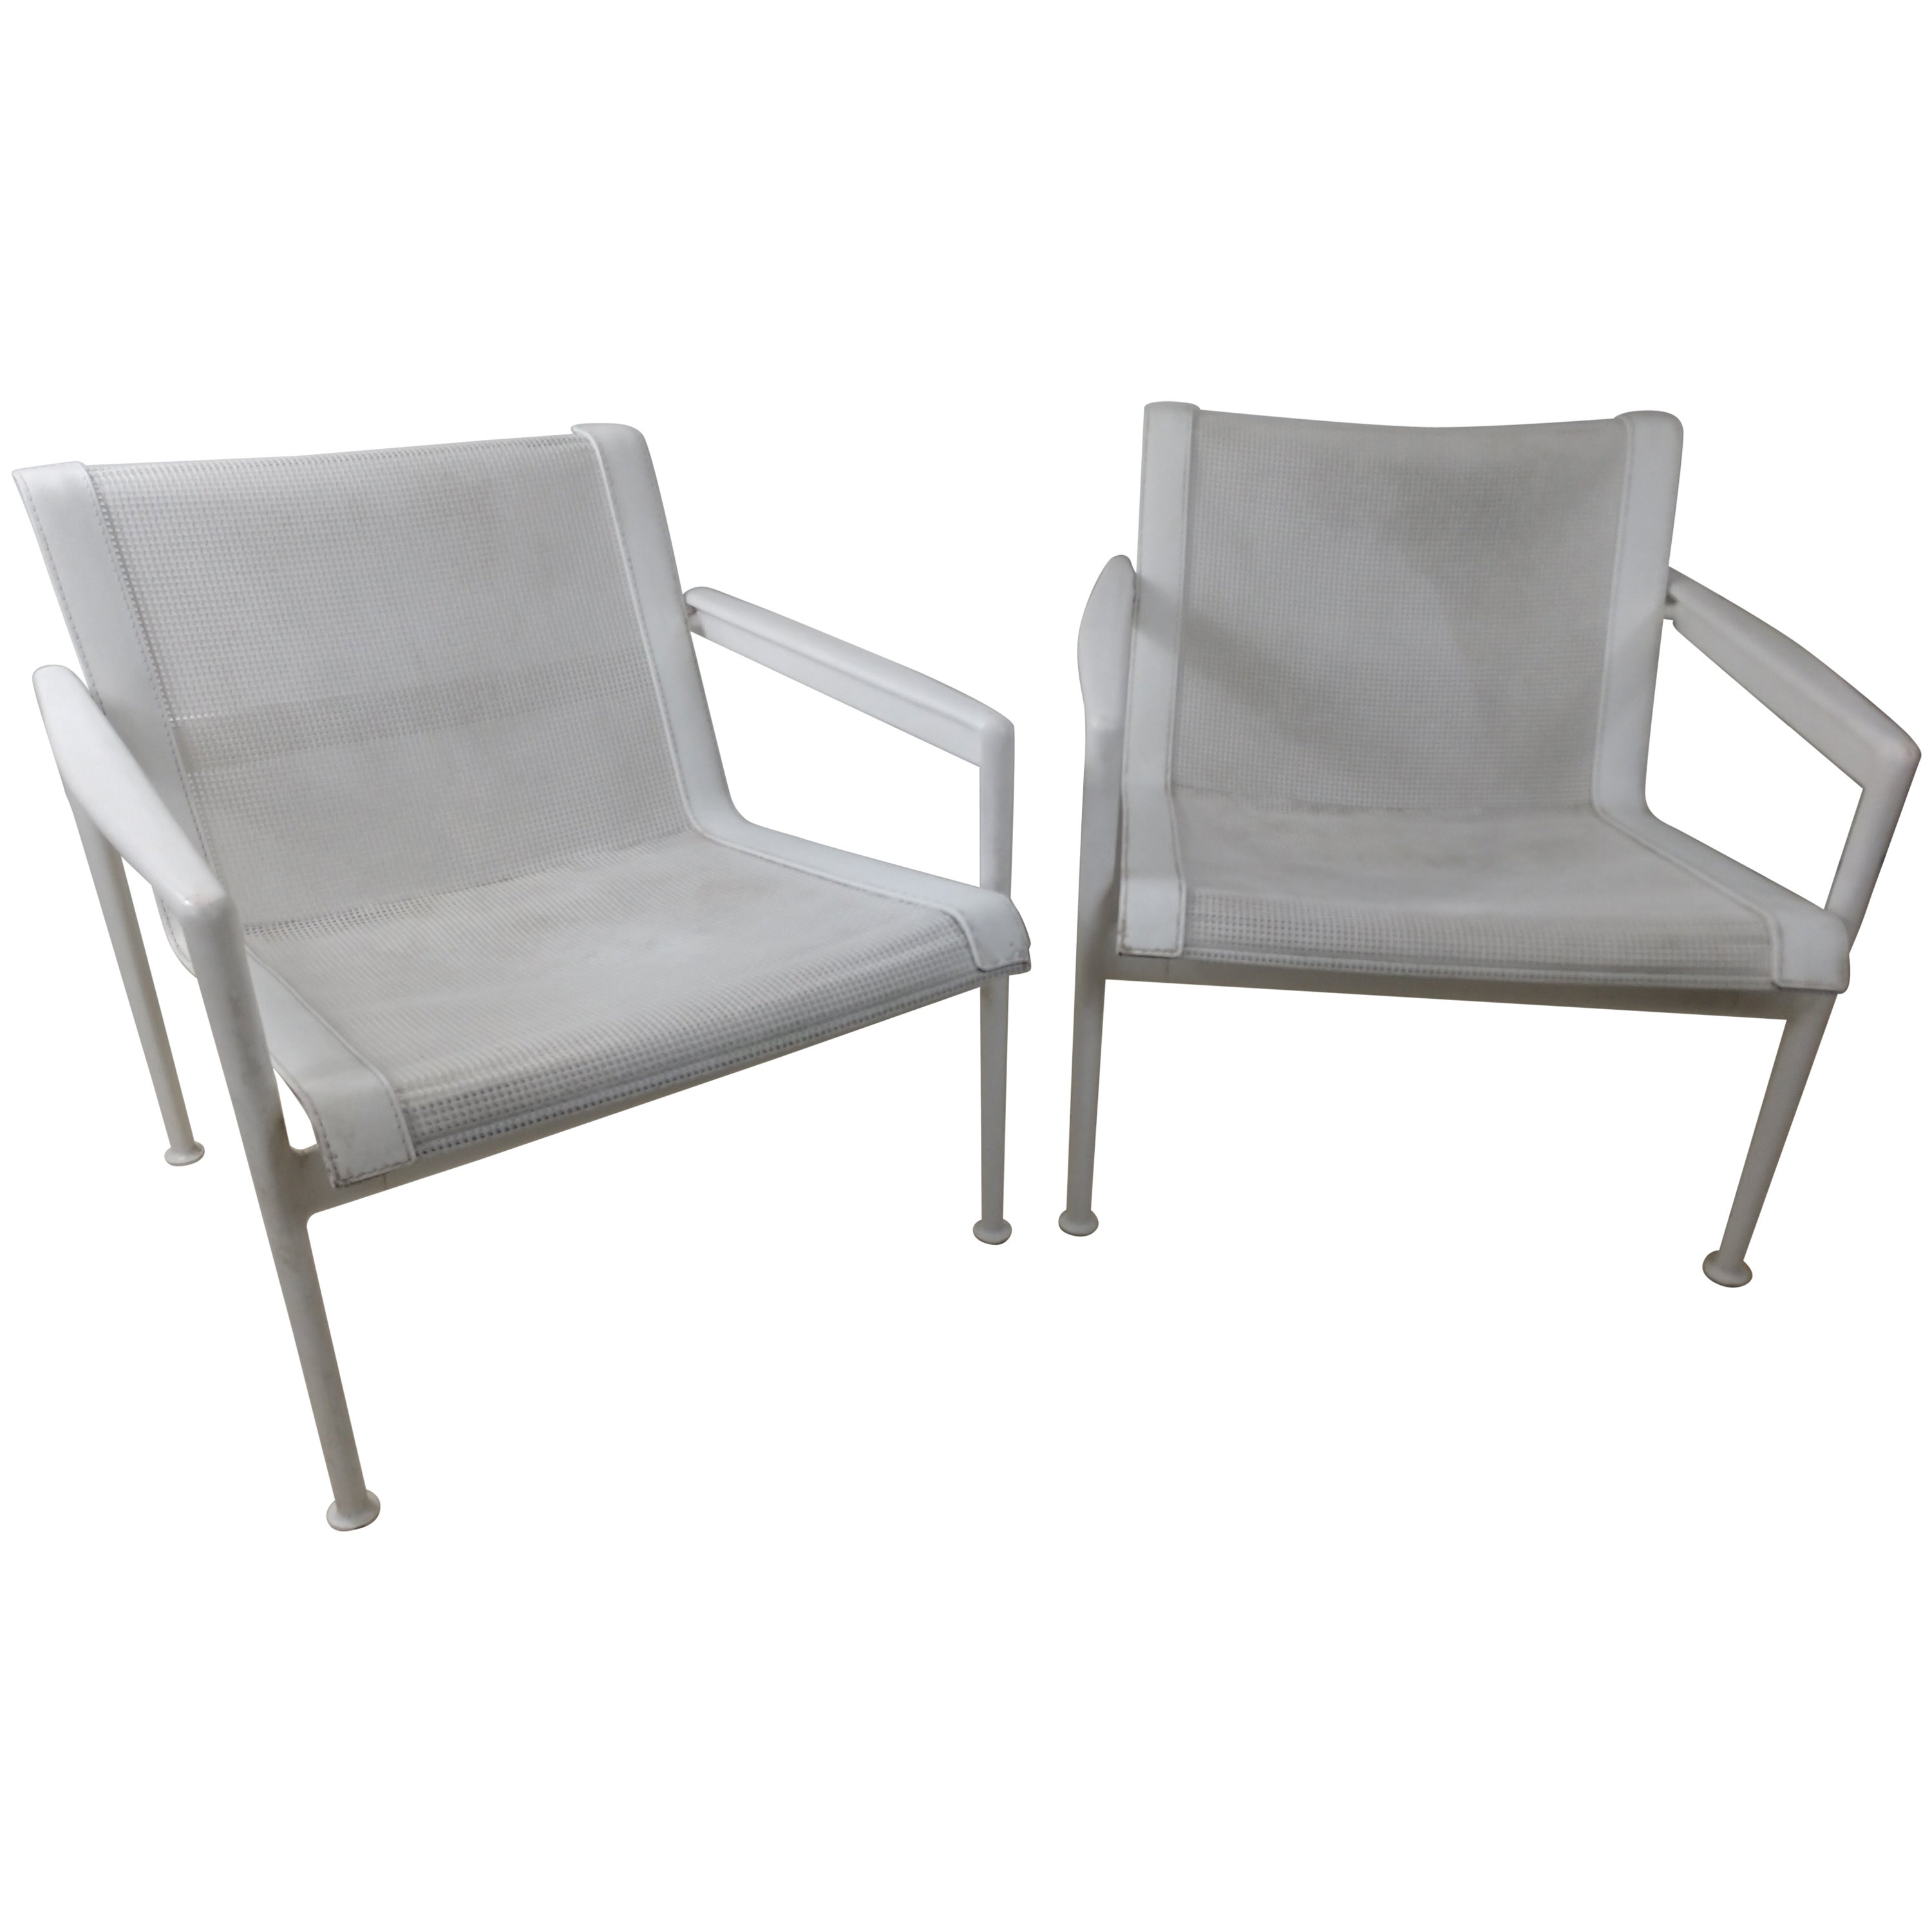 Pair of Richard Schultz Outdoor Lounge Chairs for Knoll